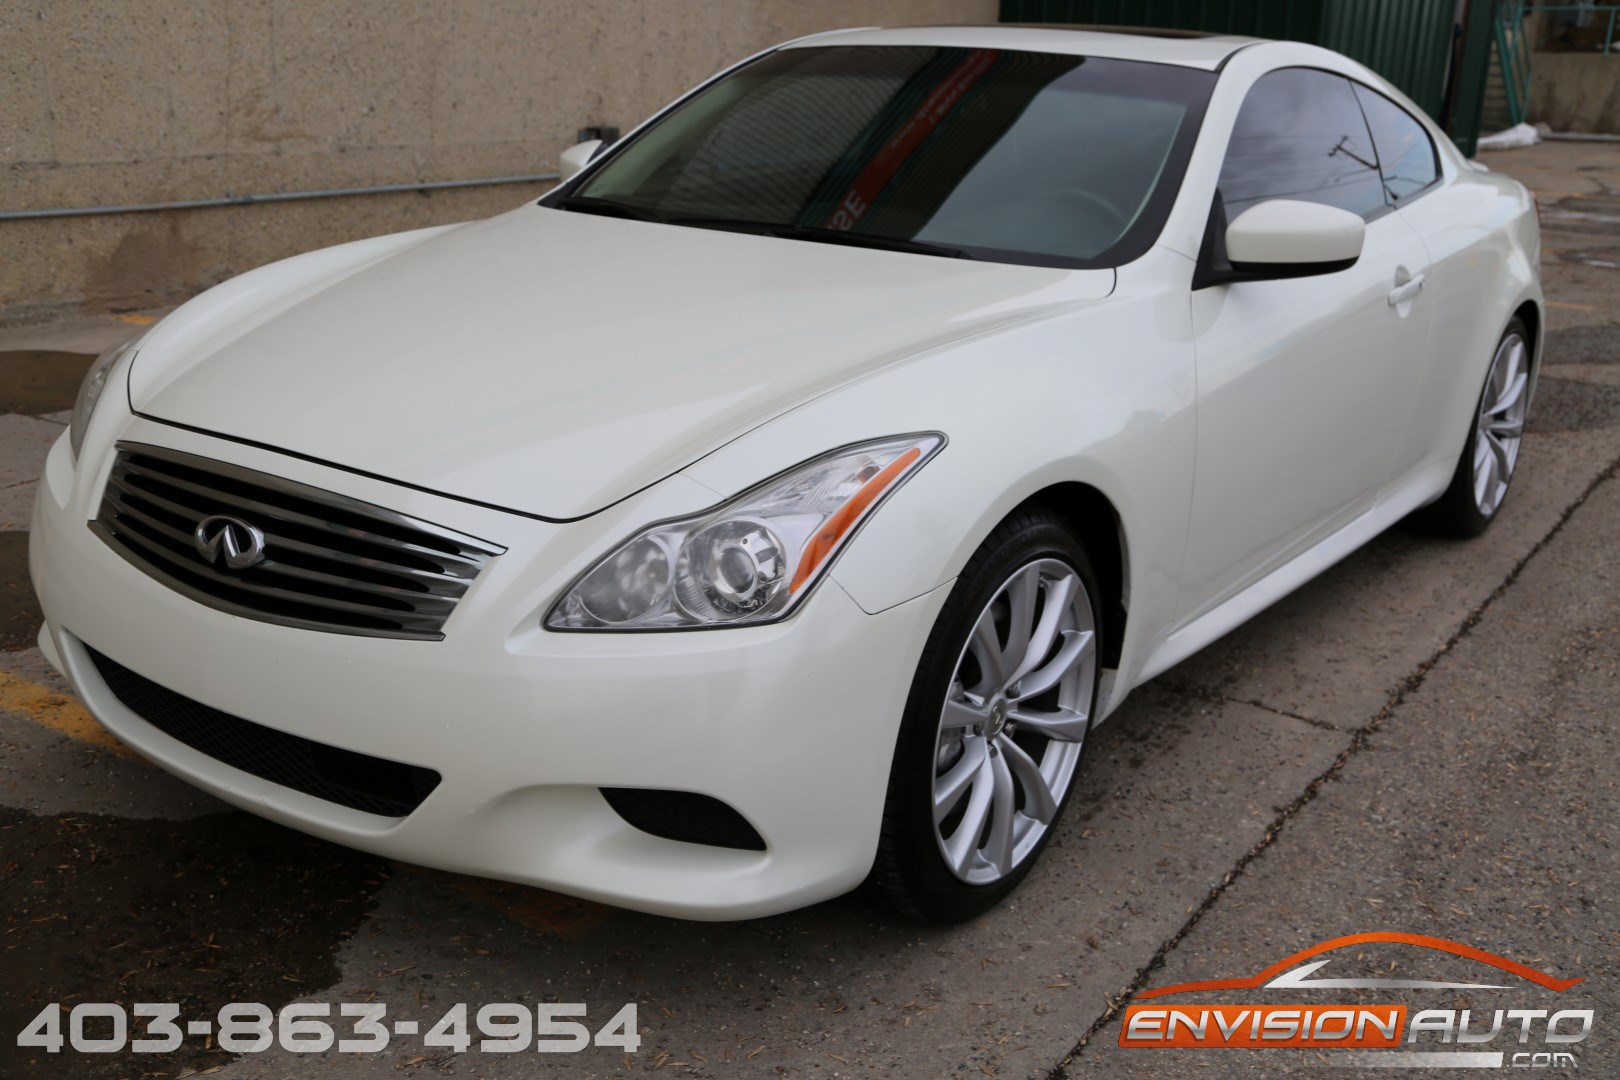 2008 infiniti g37s coupe techpremiumsport pkg envision auto 2008 infiniti g37s coupe techpremiumsport pkg vehicle specification vanachro Image collections